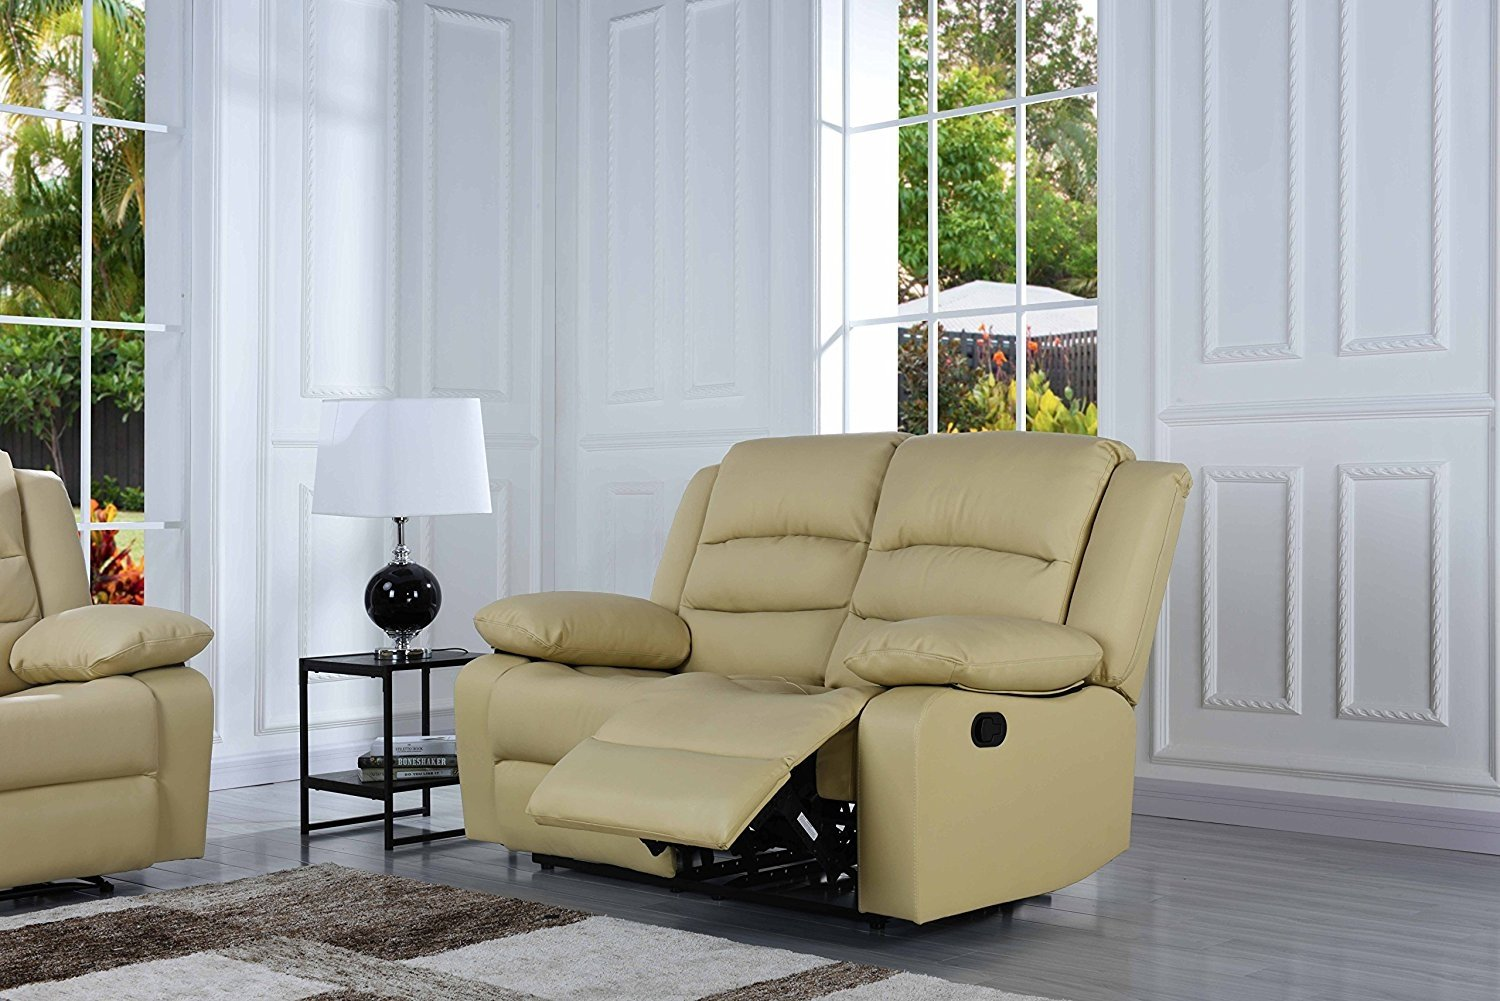 Cool Details About Classic 3 Pc Reclining Sofa Set Real Grain Leather Double Recliner Beige Gmtry Best Dining Table And Chair Ideas Images Gmtryco